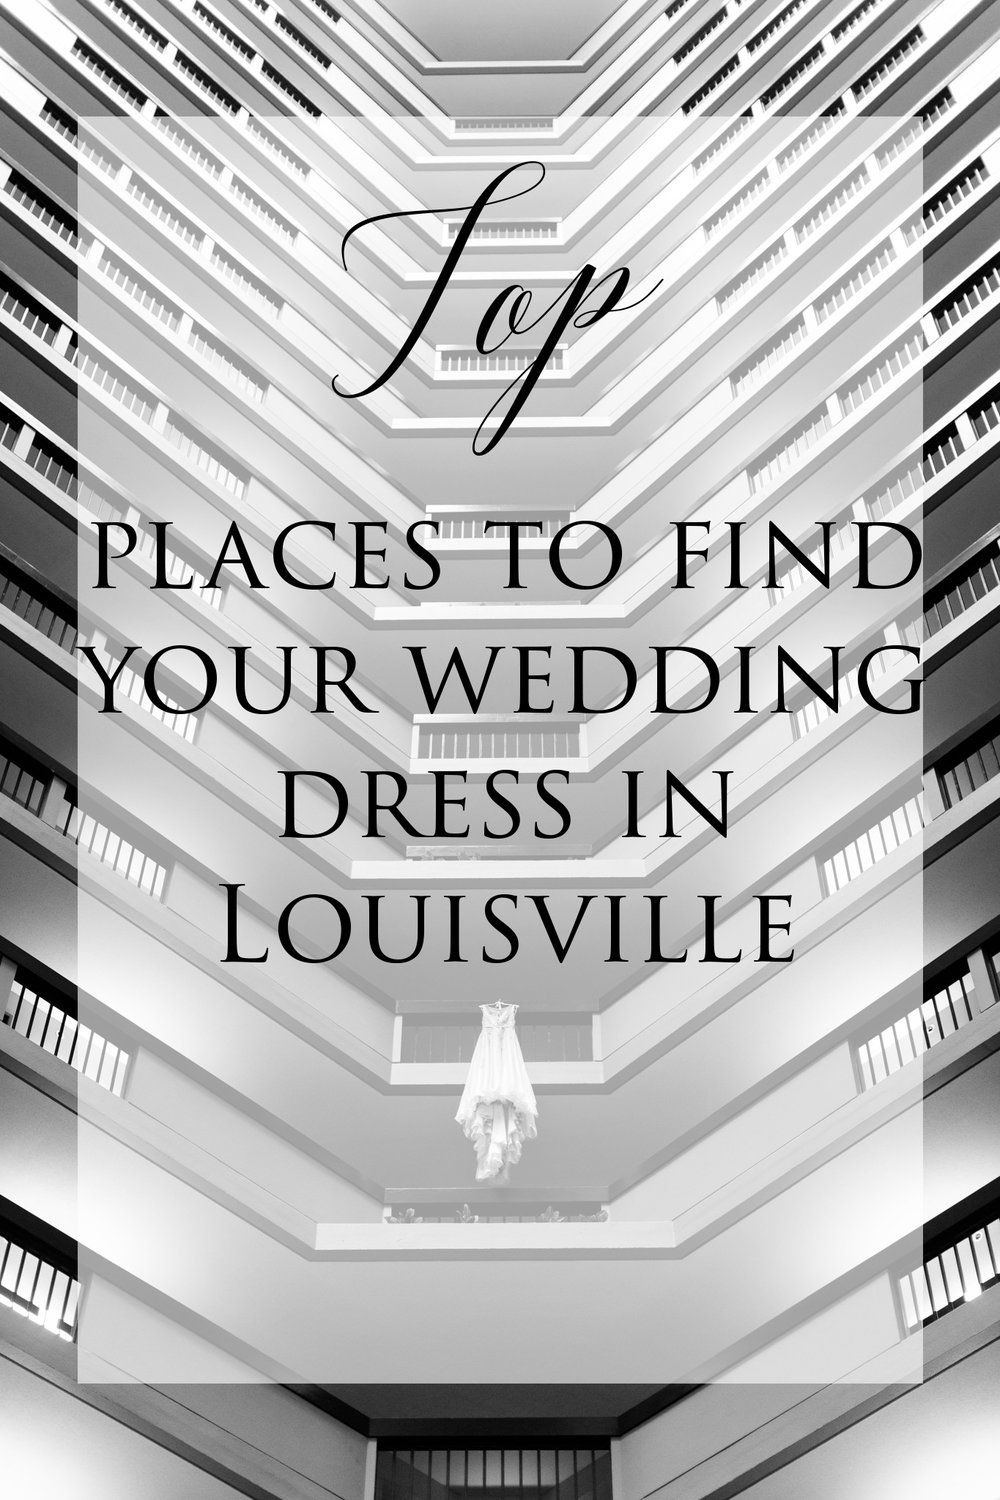 Louisville Wedding Dress Boutiques - If you're on the lookout for a beautiful, unique wedding dress in Louisville, KY, be sure you check out these bridal shops...read more